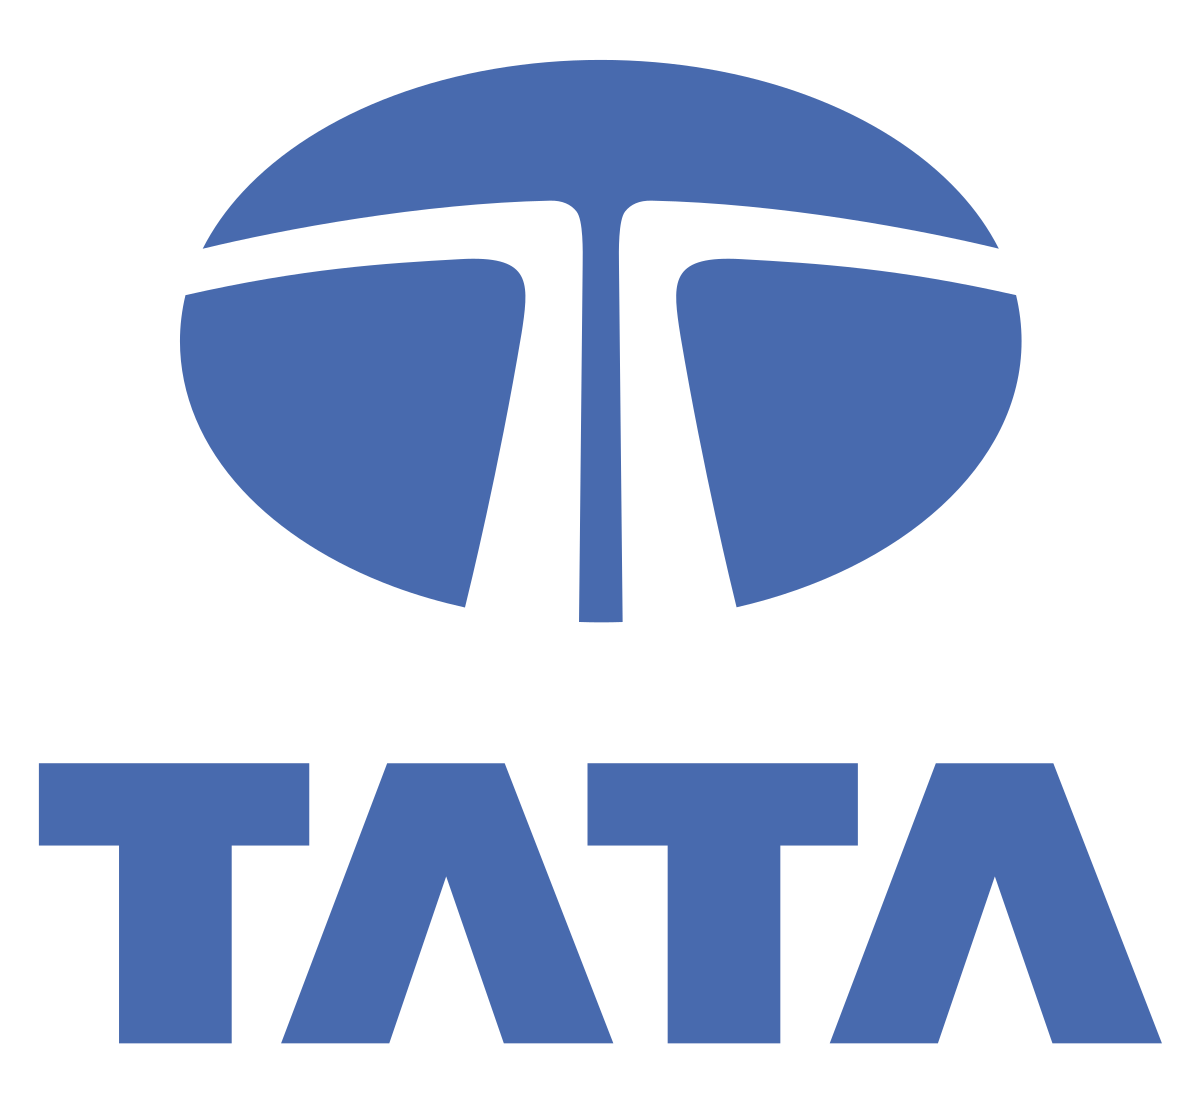 TATAS DETERMINED TO FIGHT MISTRY'S REINSTATEMENT IN SC